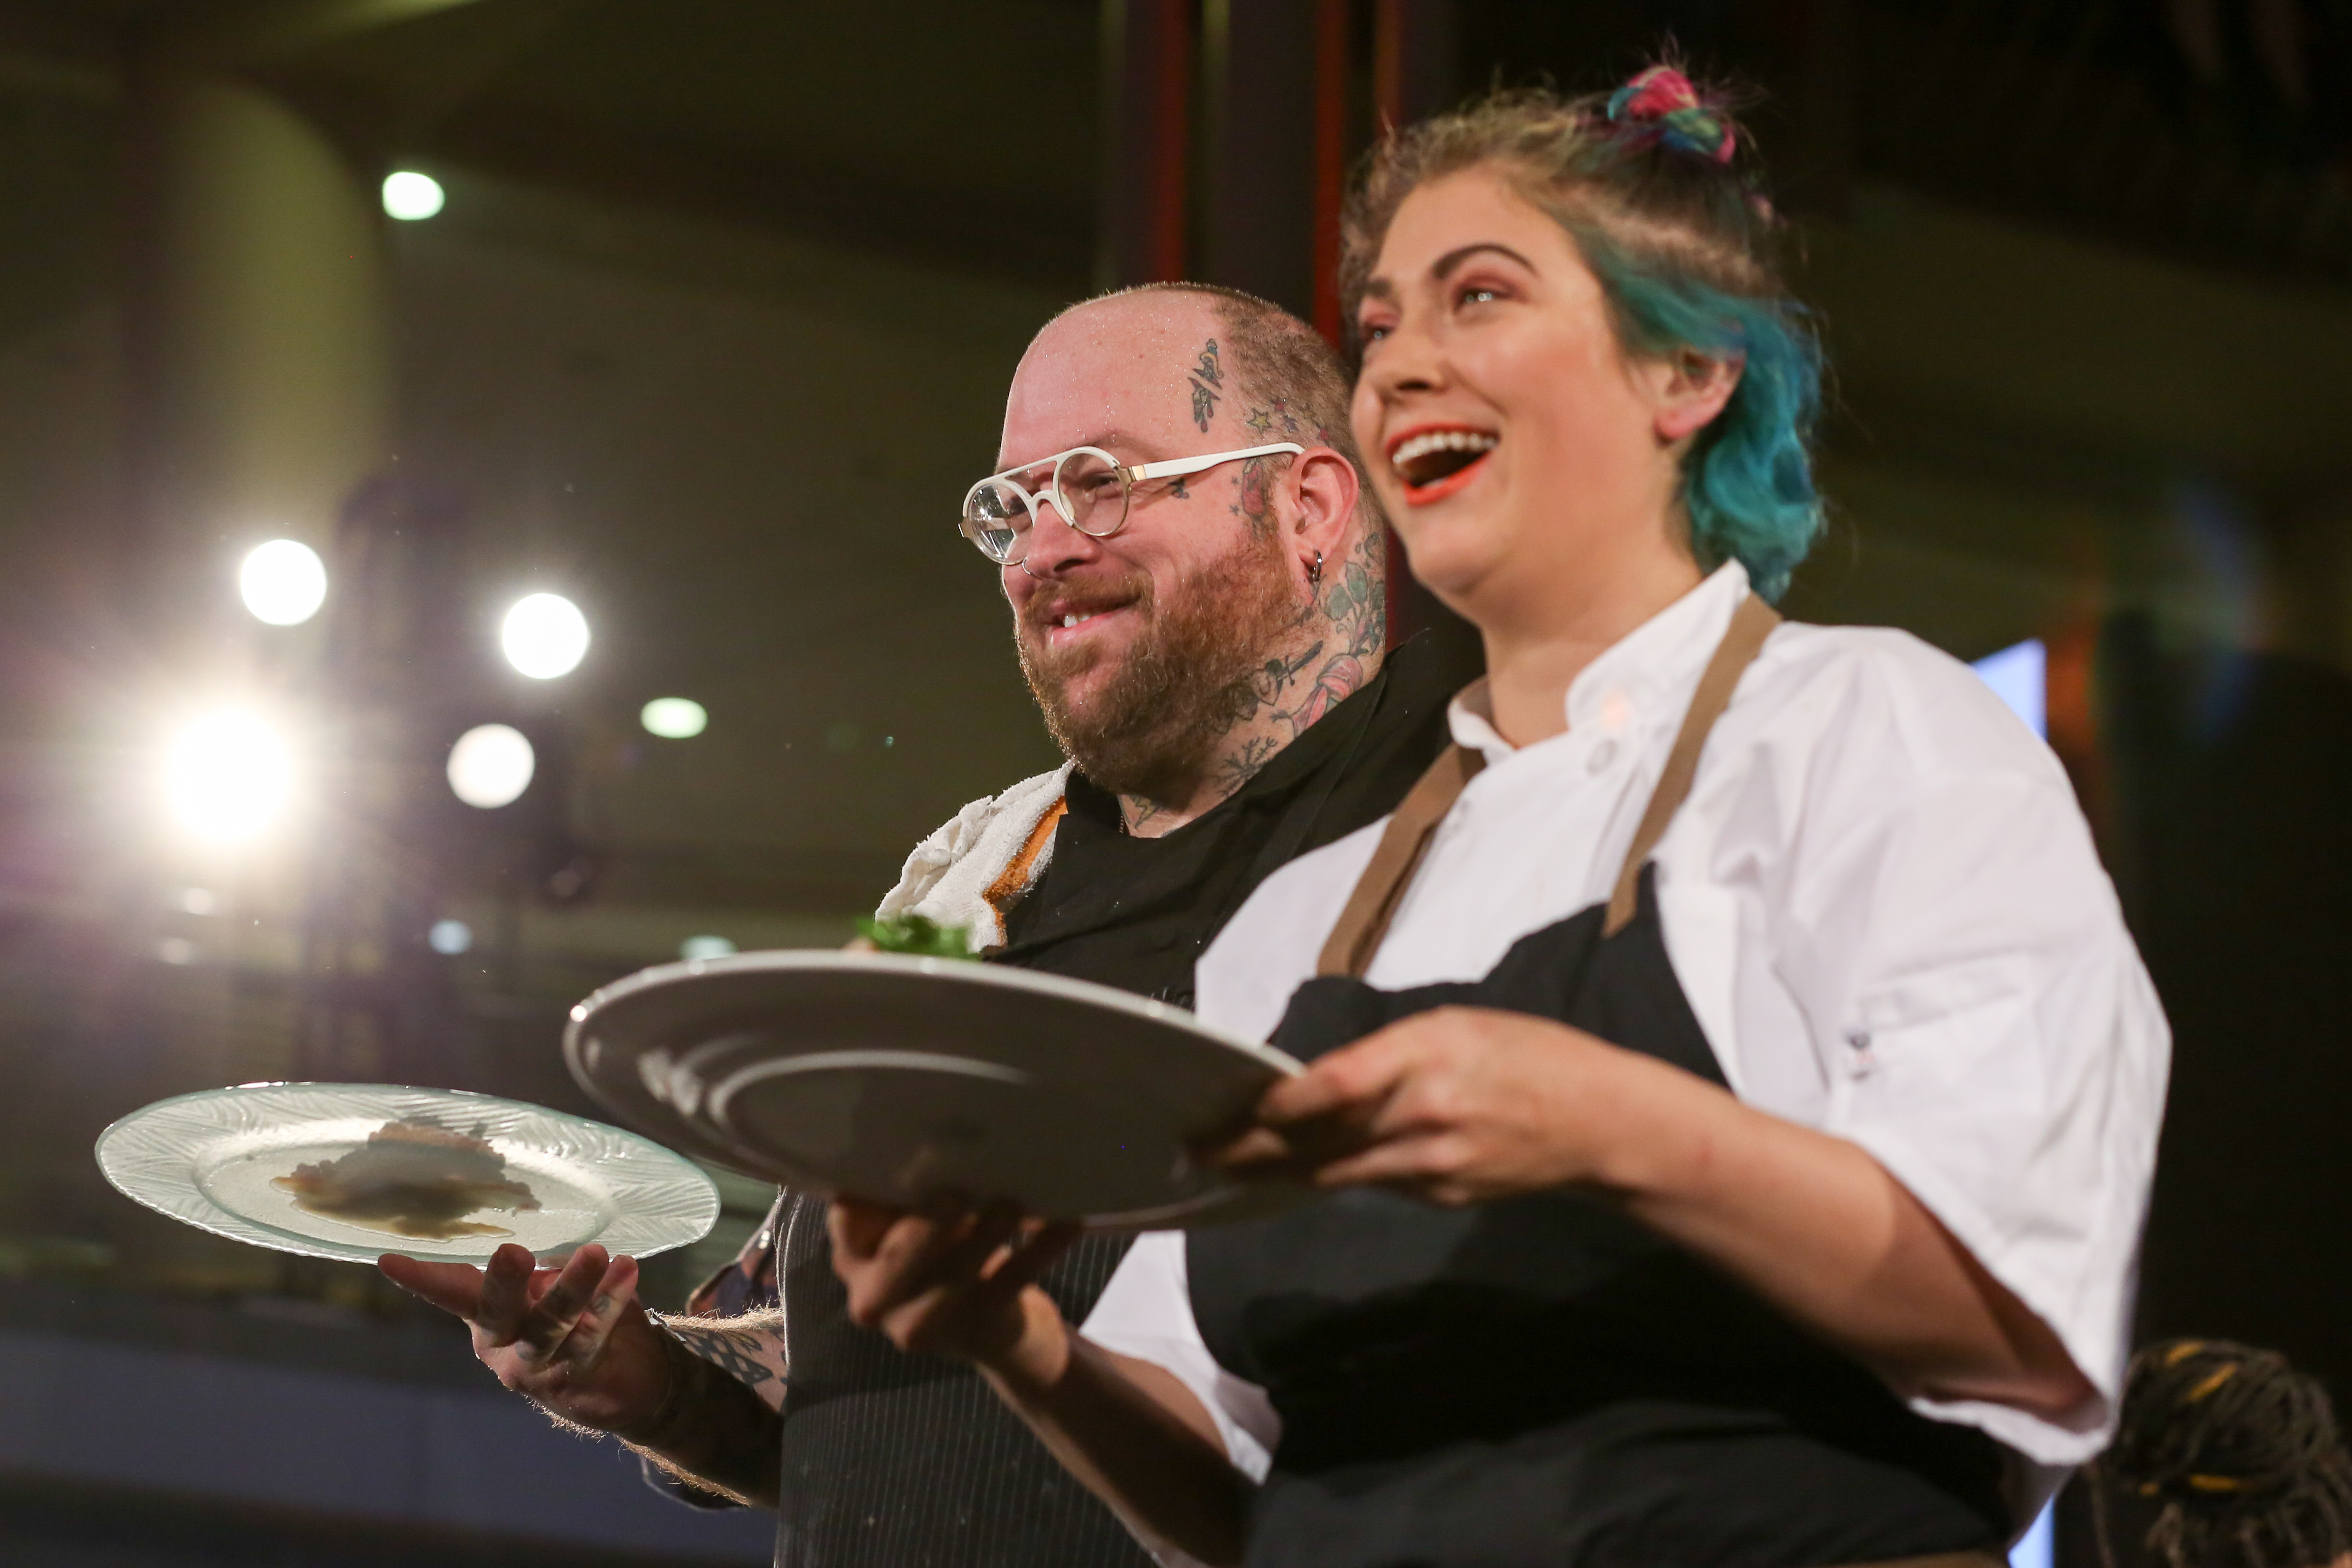 Hamilton Johnson of Honeysuckle and Miranda Rosenfelt of Sally's Middle Name present their dishes to the judges. (Amanda Andrade-Rhoades/DC Refined)<p></p>